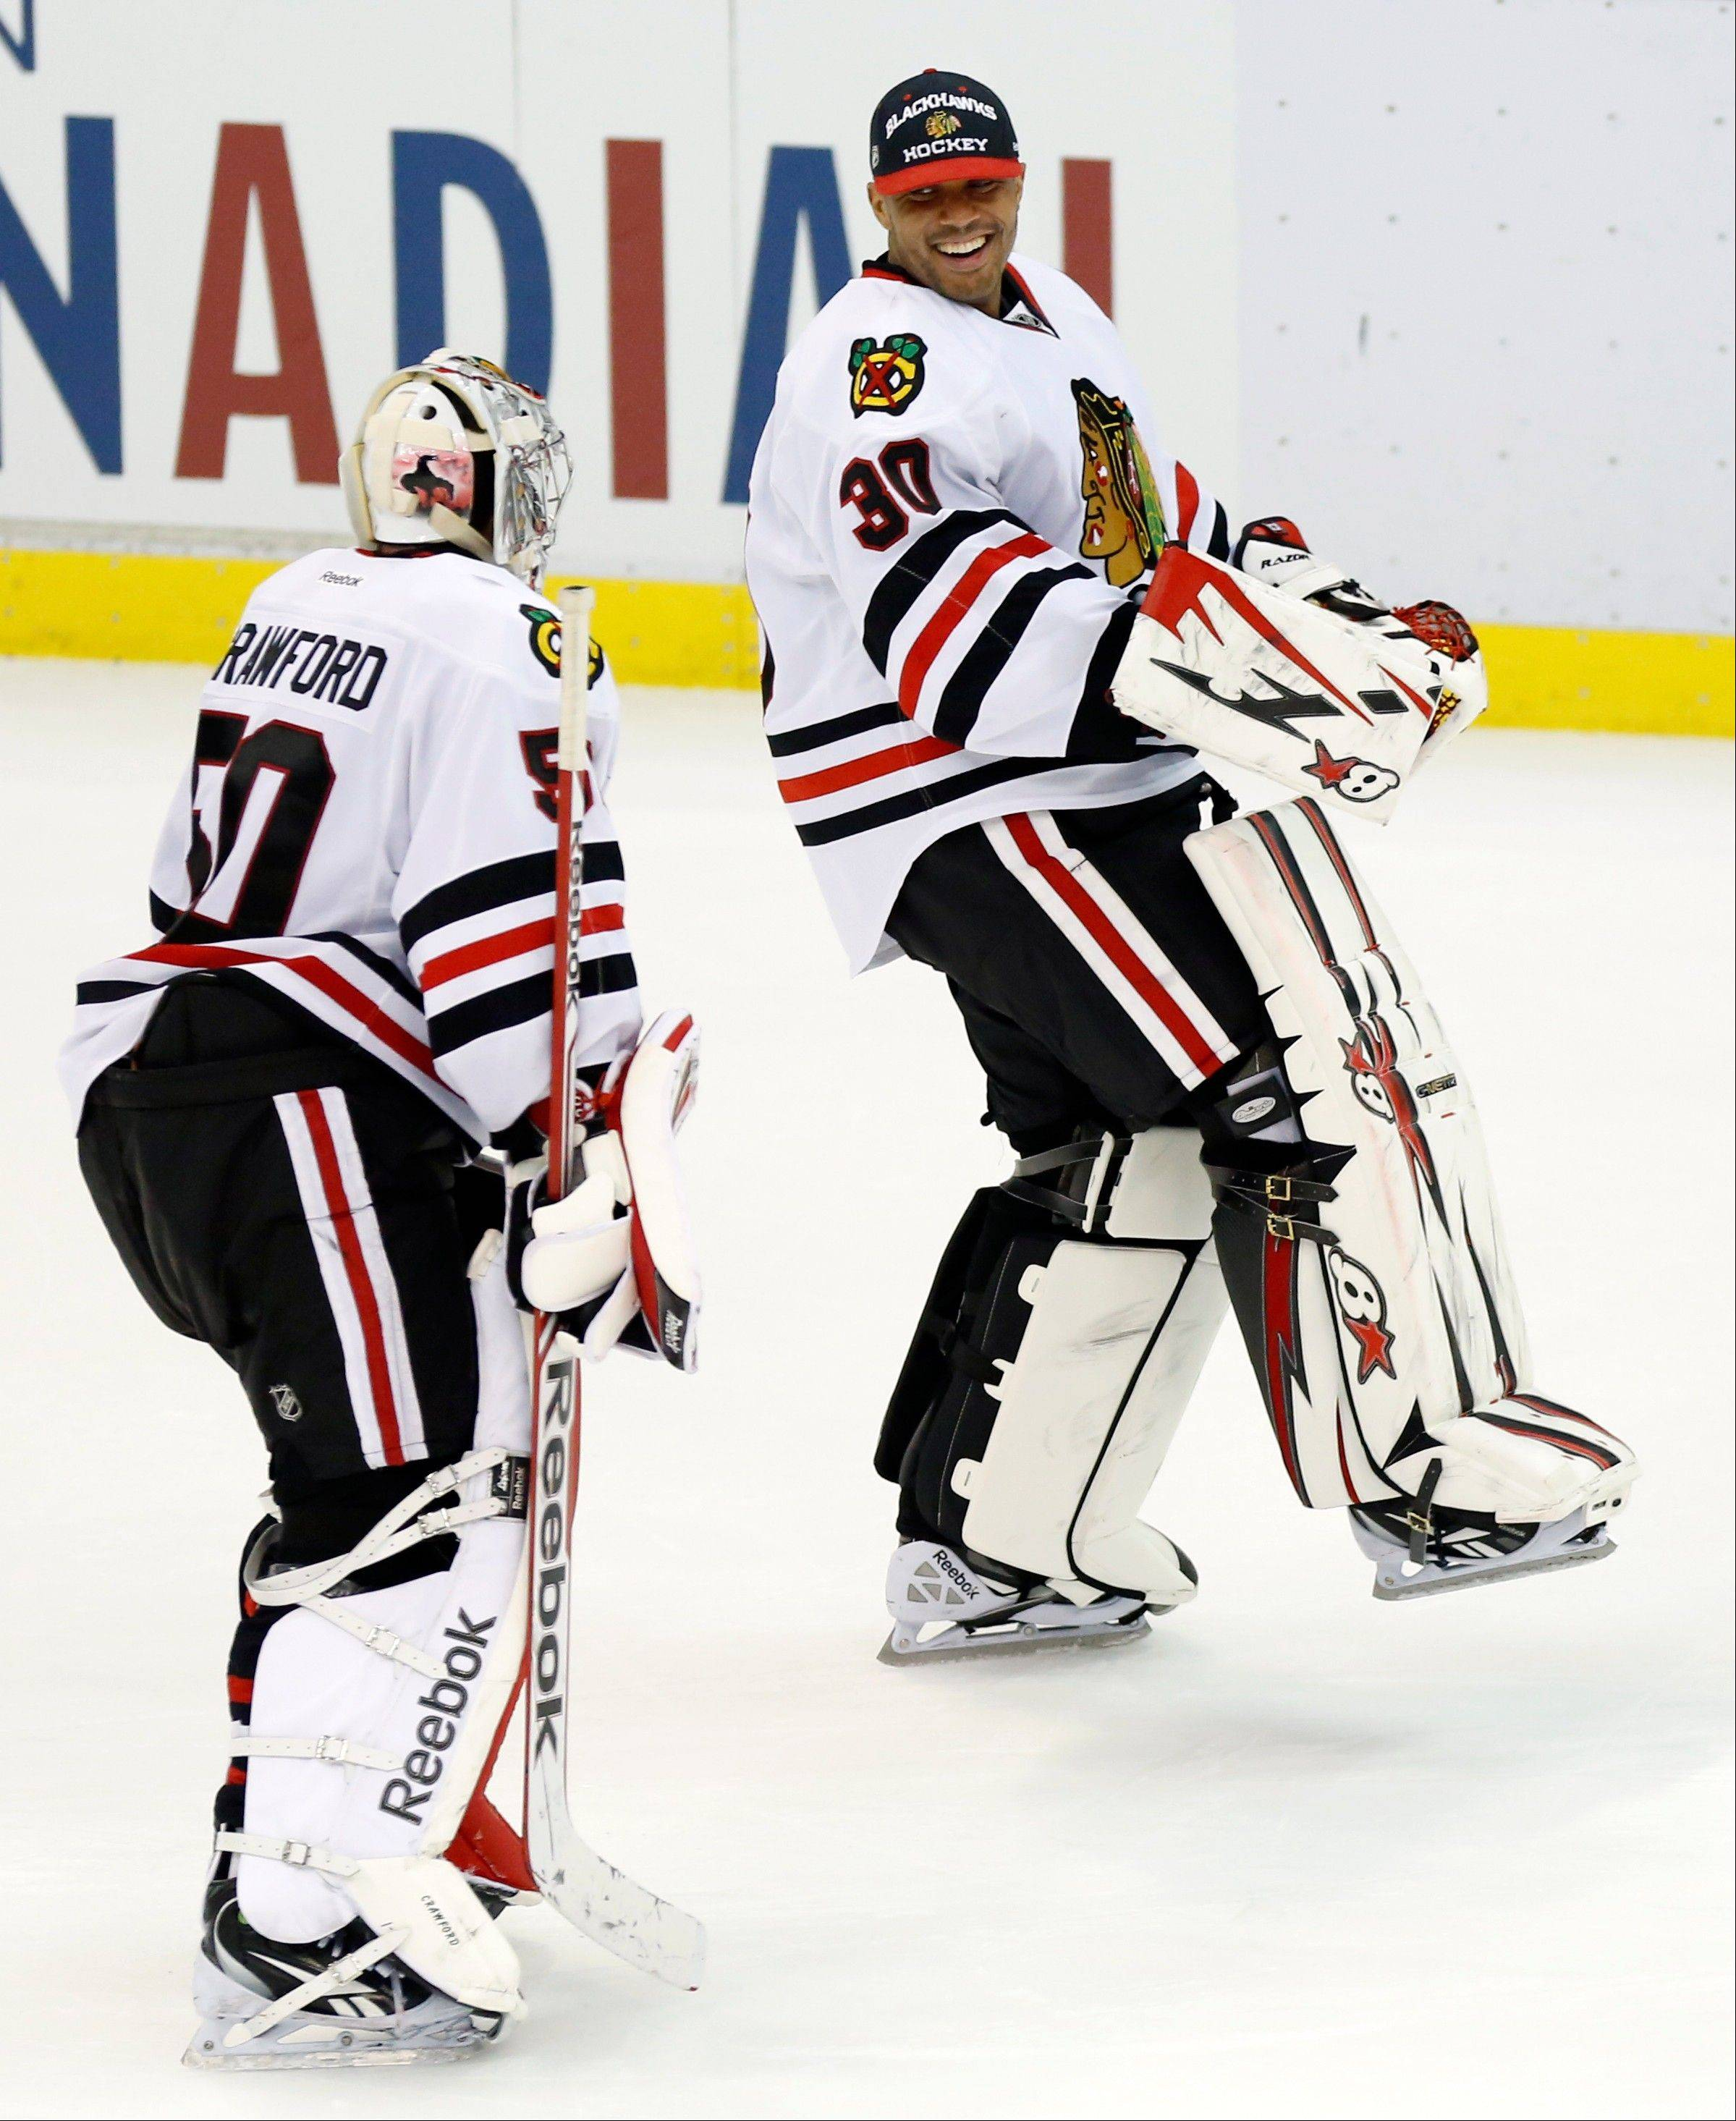 Goalies Ray Emery, right, and Corey Crawford share a laugh after a Blackhawks victory in March.